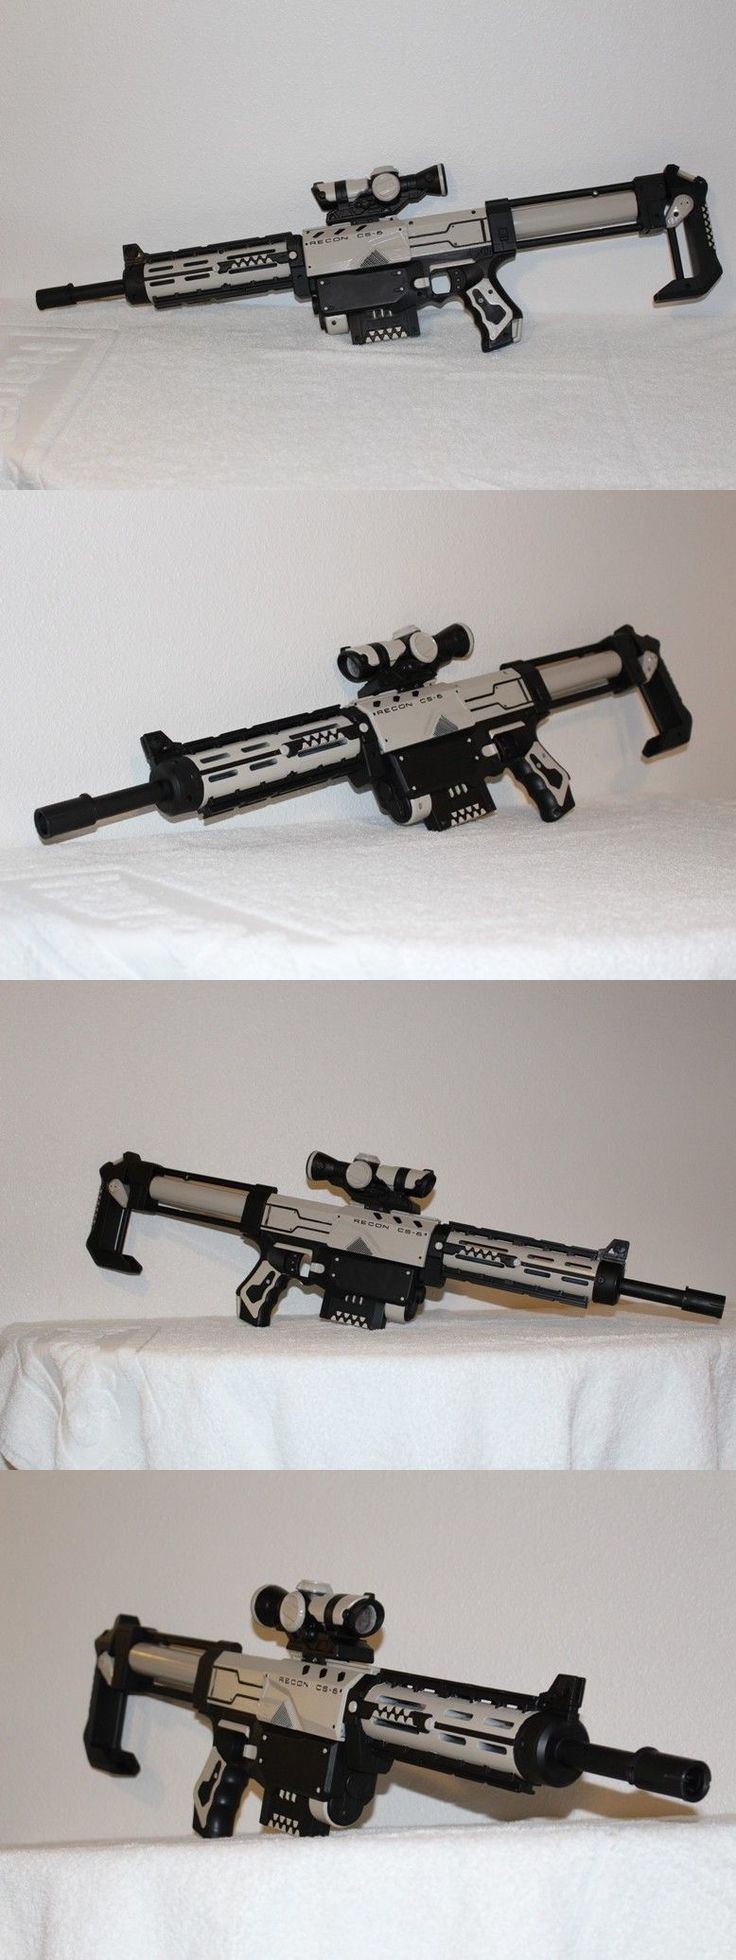 Dart Guns and Soft Darts 158749: Custom Painted Modified Nerf Guns For Cosplay, Larp And Hvz: Nerf Recon -> BUY IT NOW ONLY: $195 on eBay!